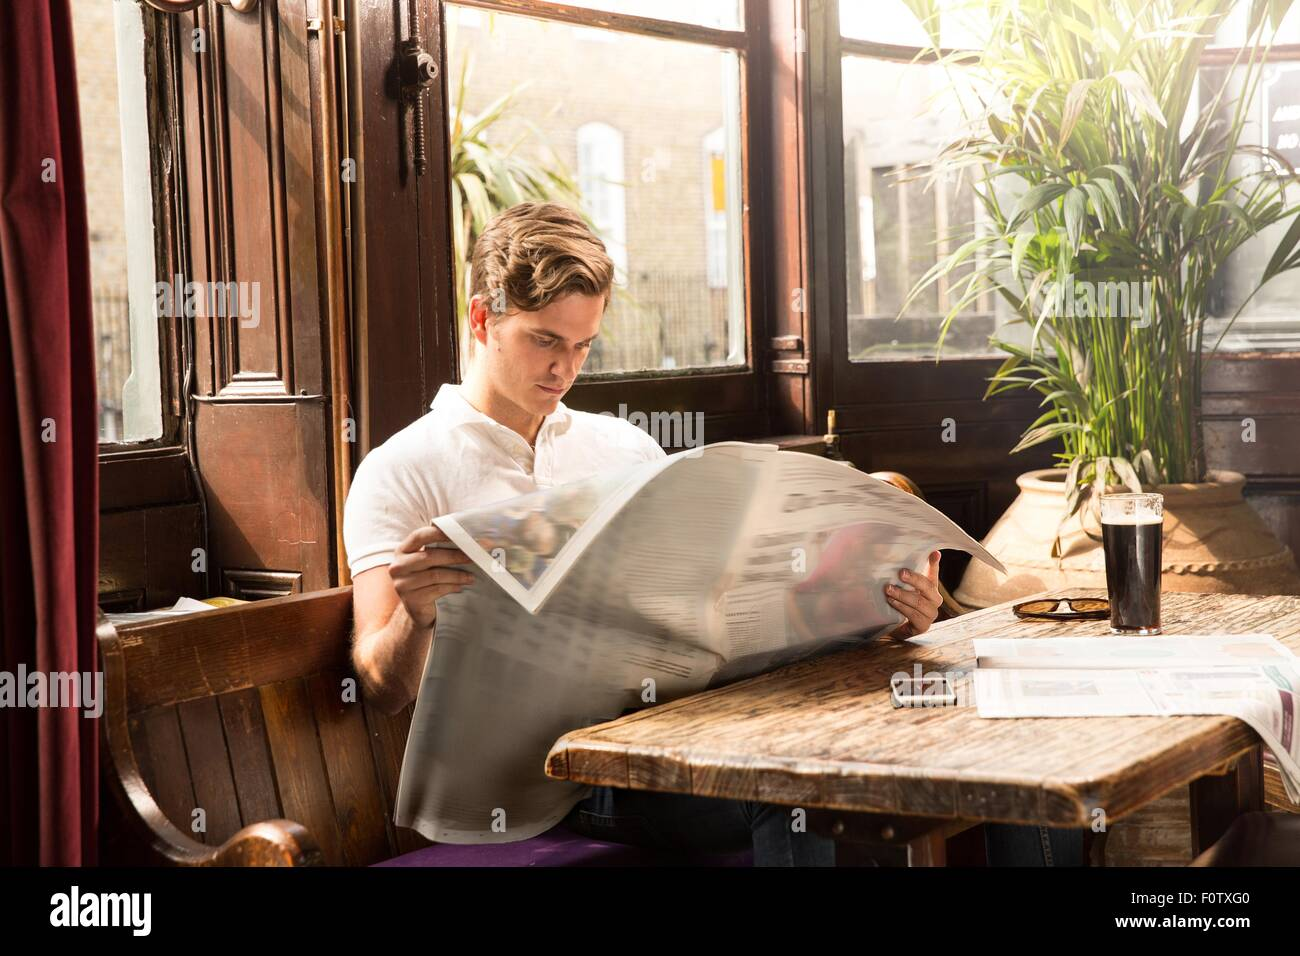 Young man sitting at table reading newspaper Photo Stock